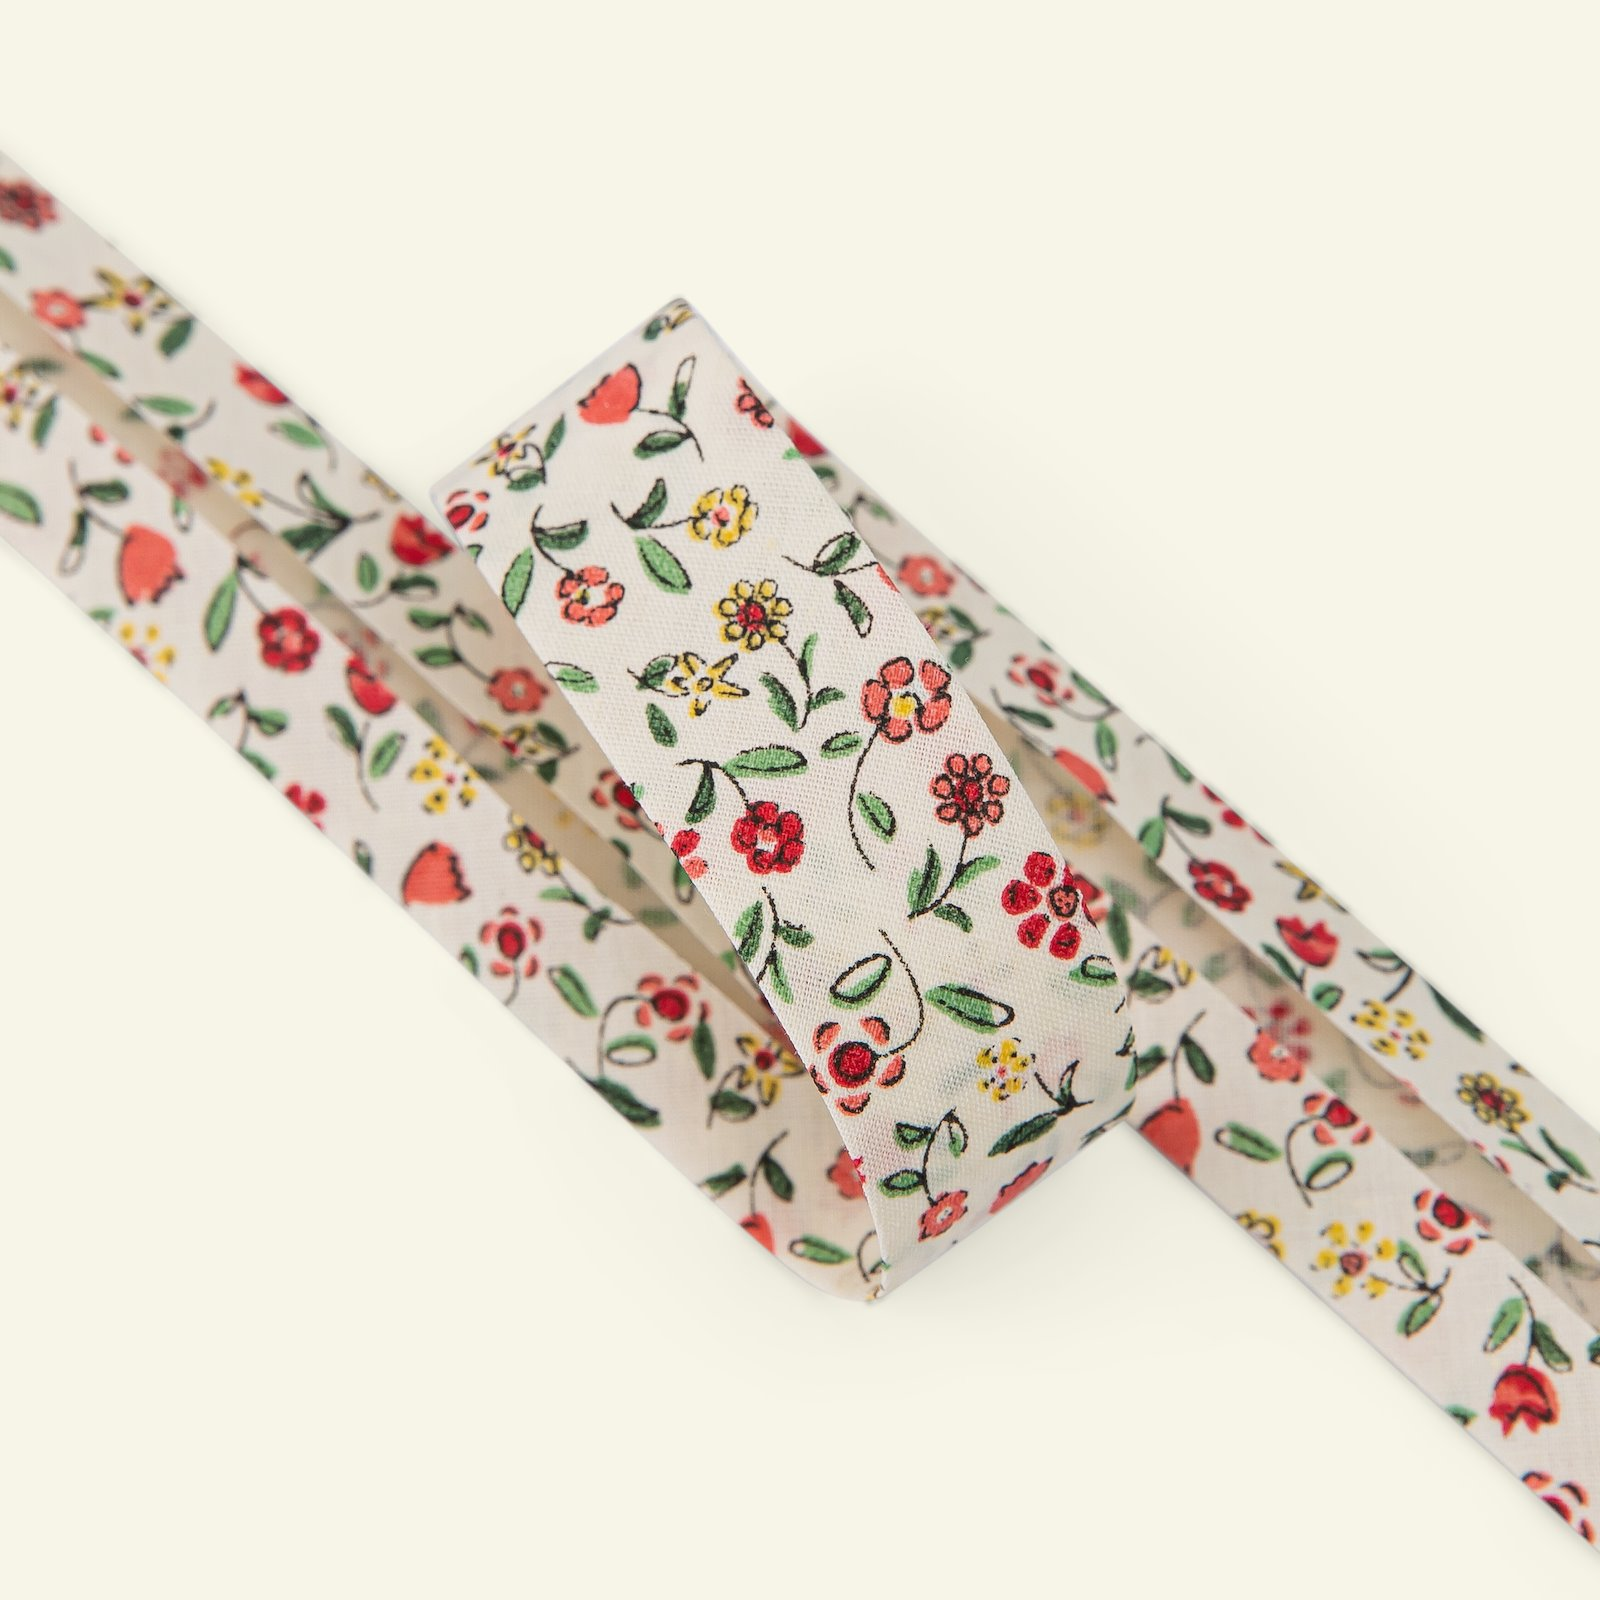 Bias tape flowers 20mm offwhite/red 3m 22346_pack